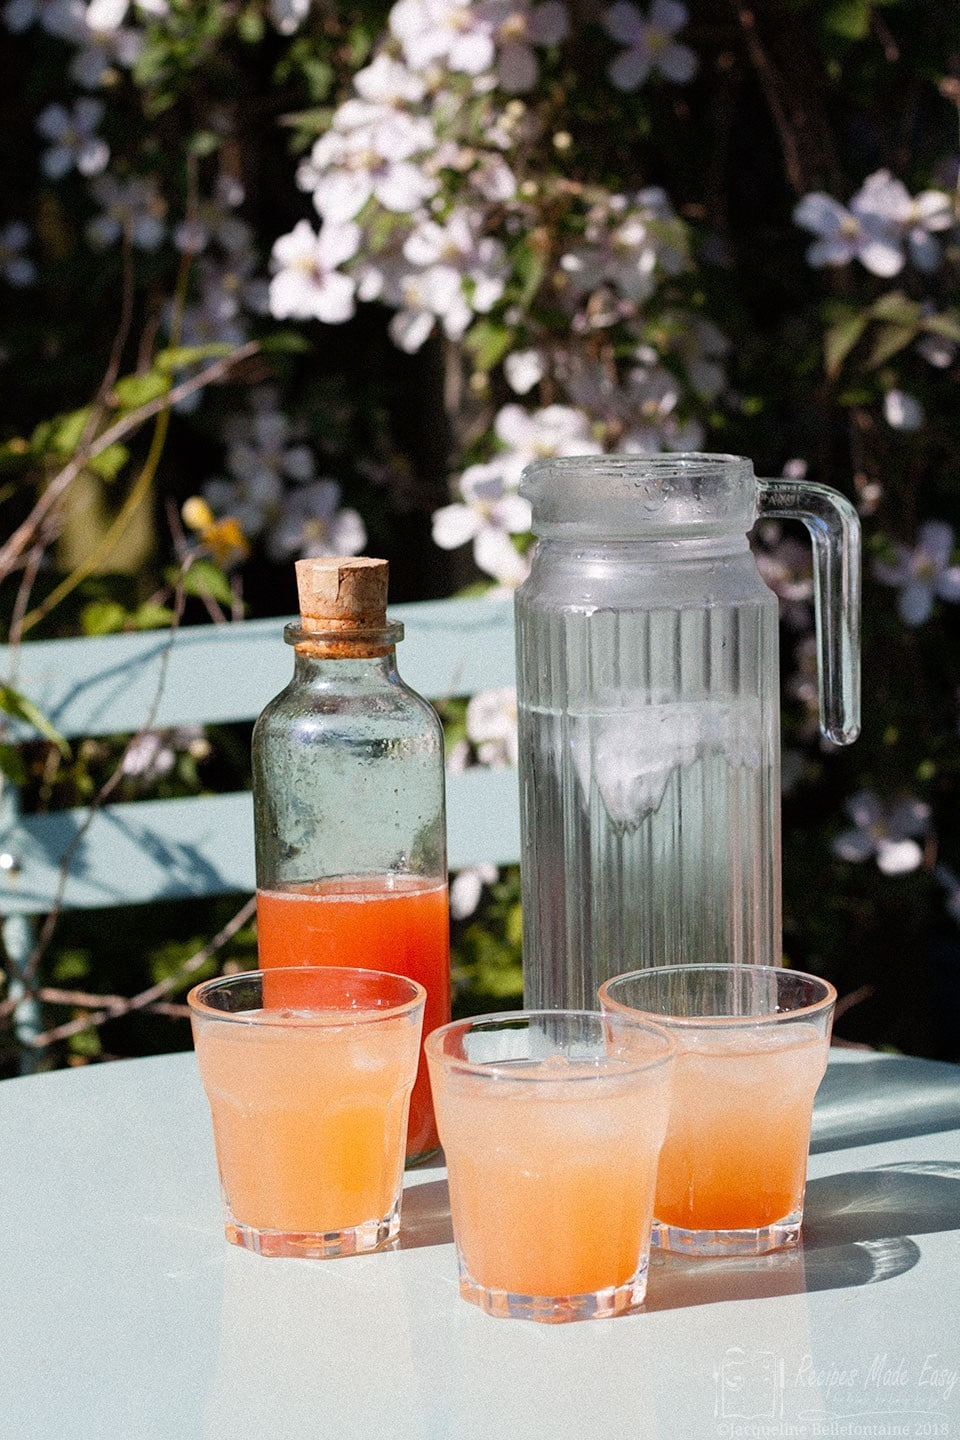 jug of water, bottle of corial and three glasses of rhubarb cordial on a garden table